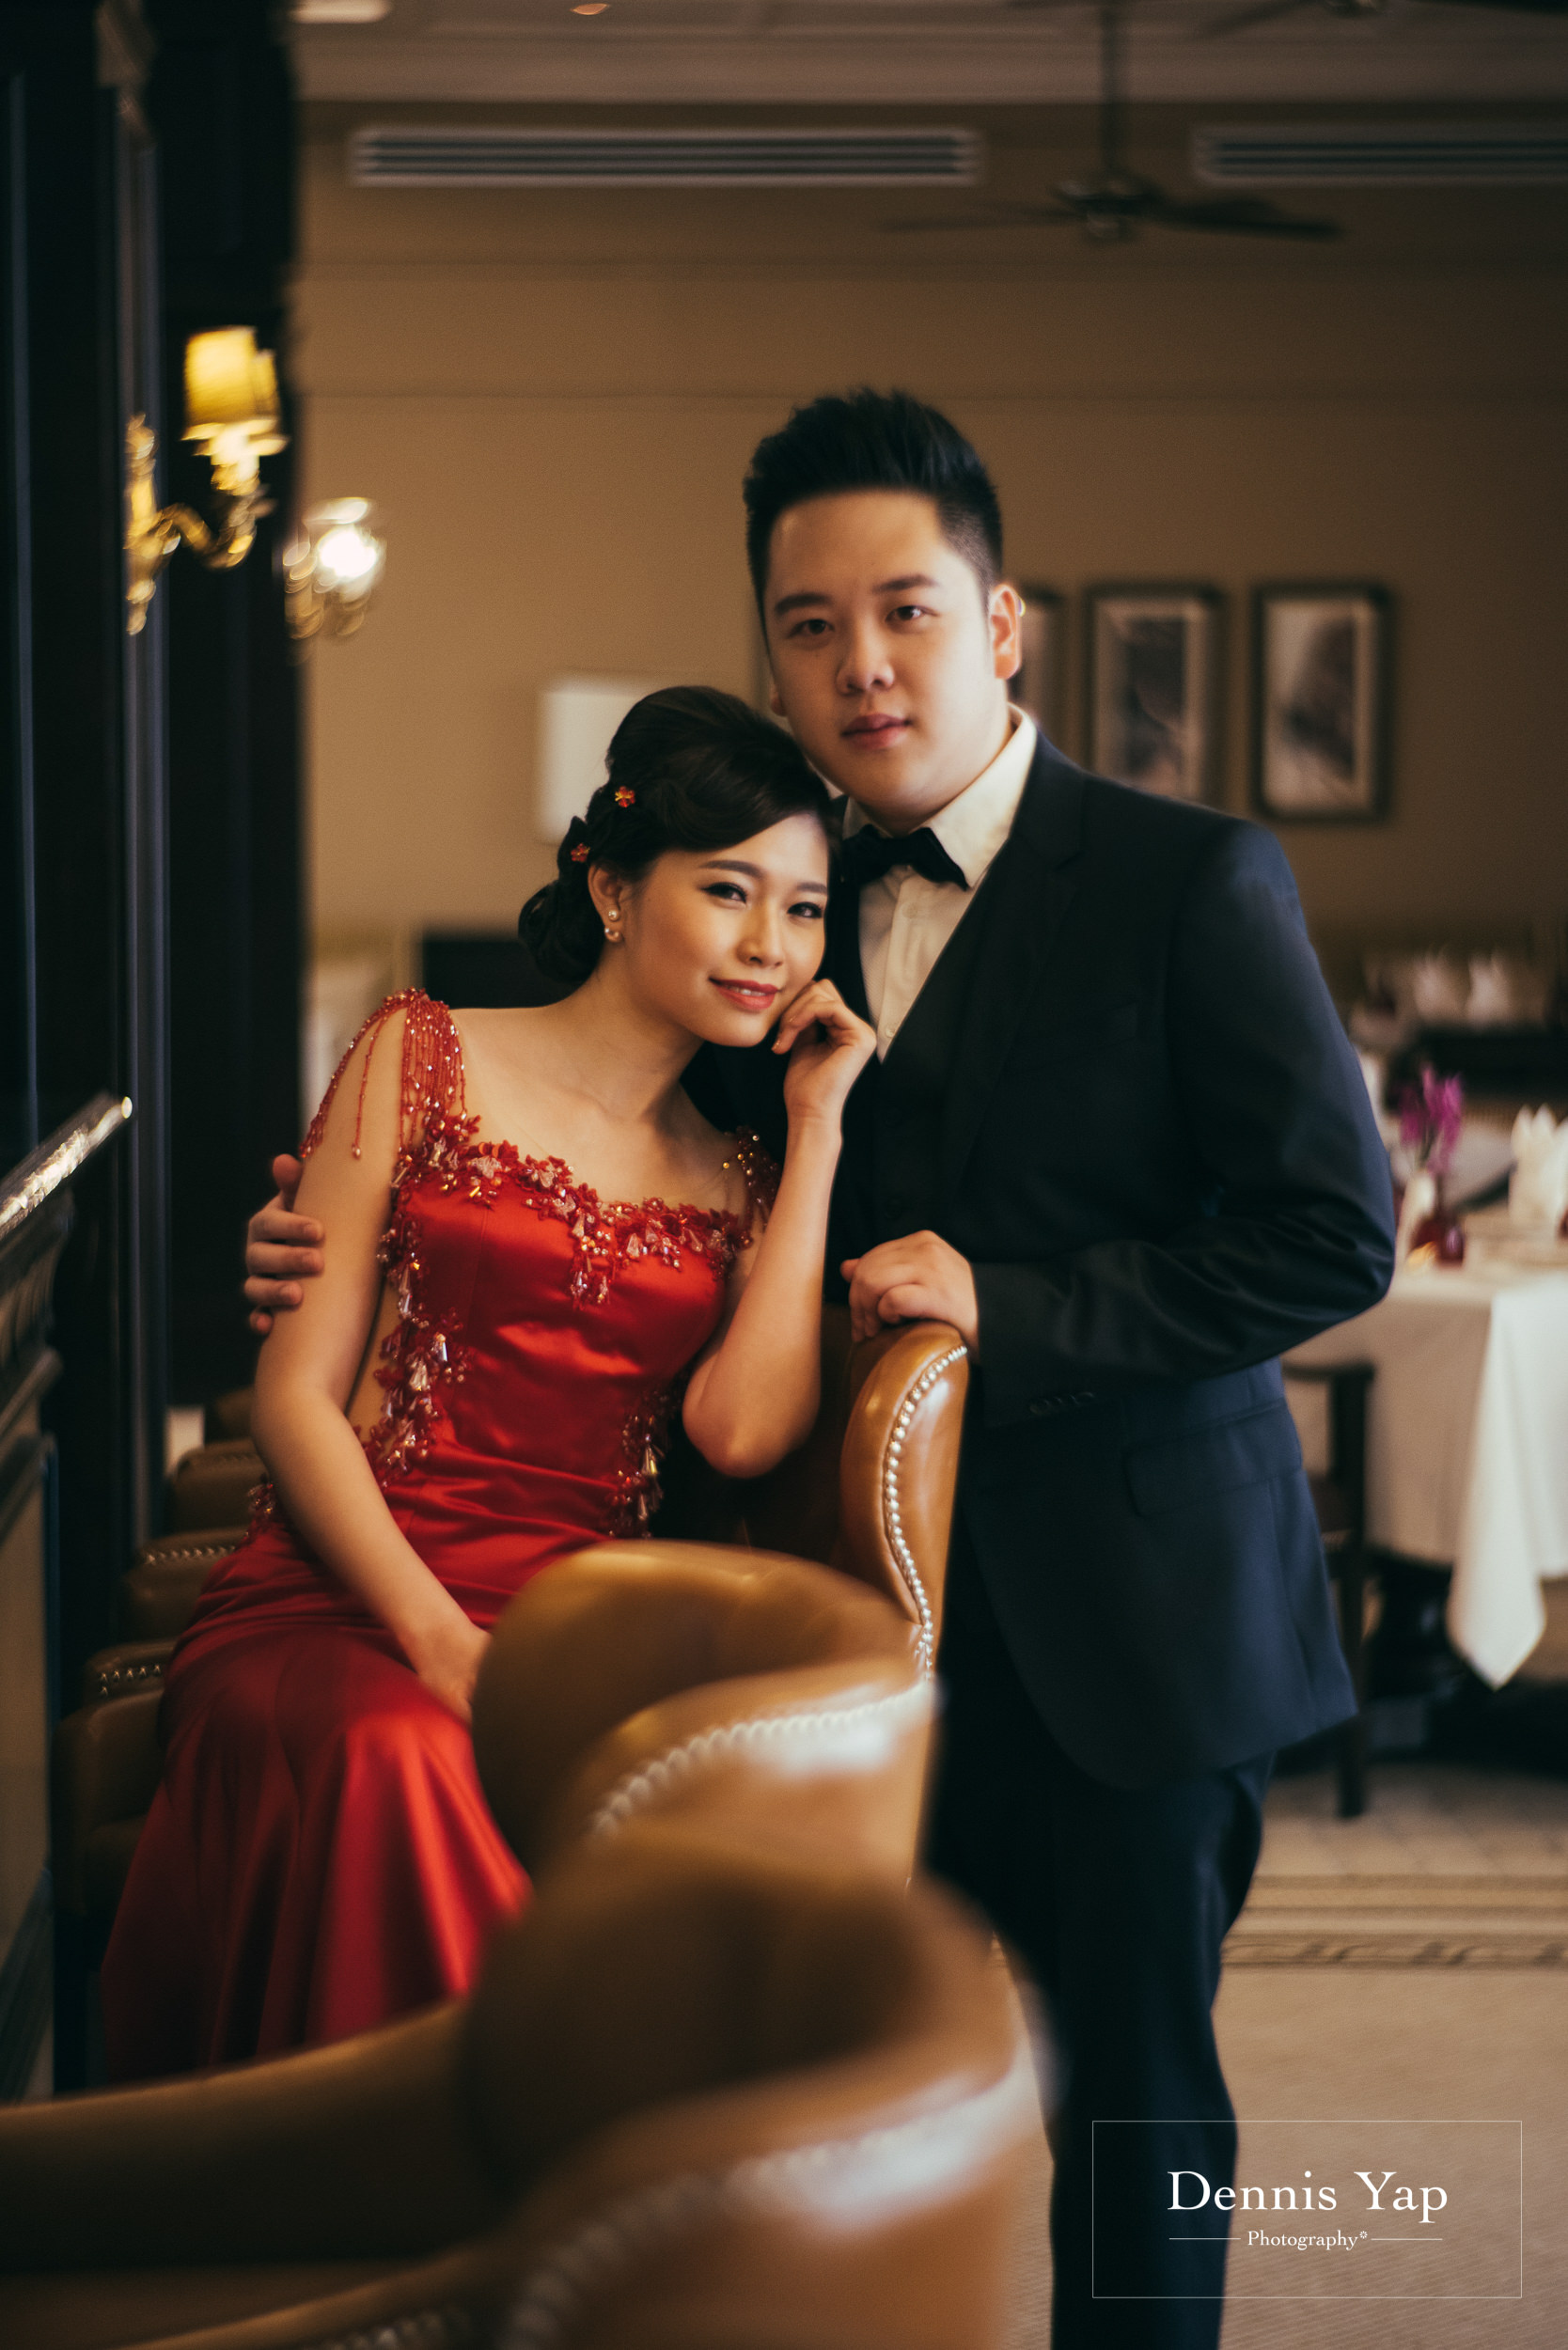 ivan constance pre wedding majestic hotel dennis yap photography luxury style calm serious-4.jpg